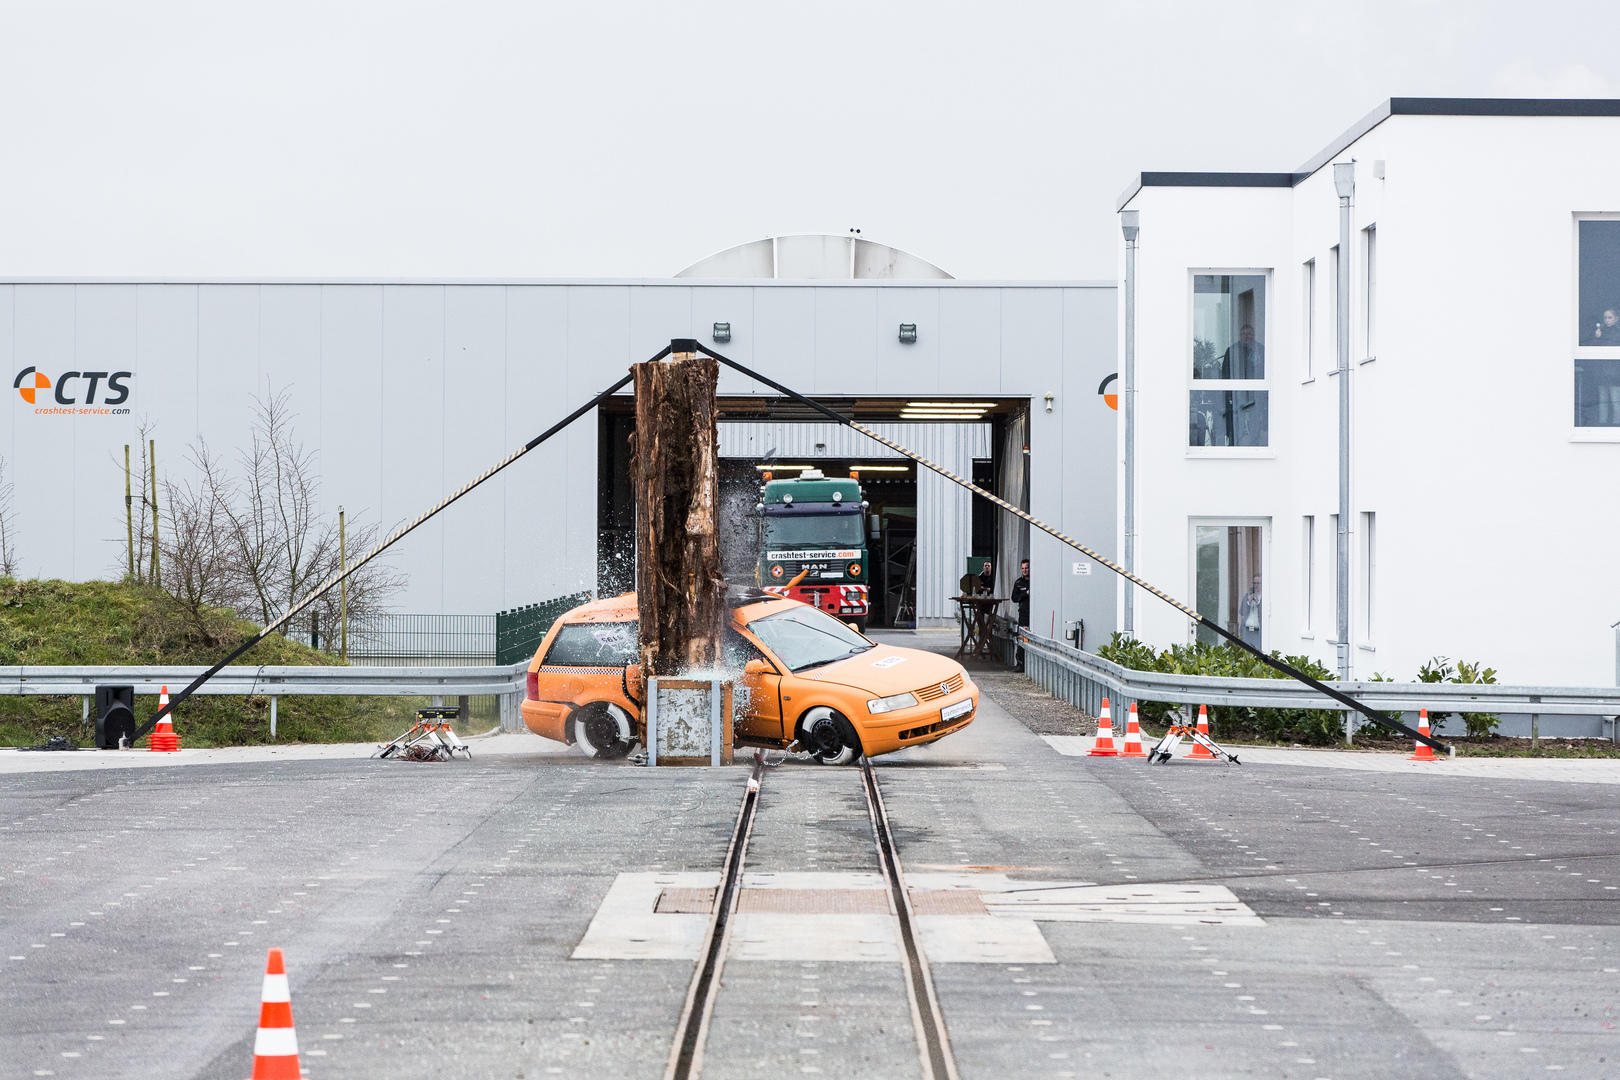 Crash test facility - About CTS |